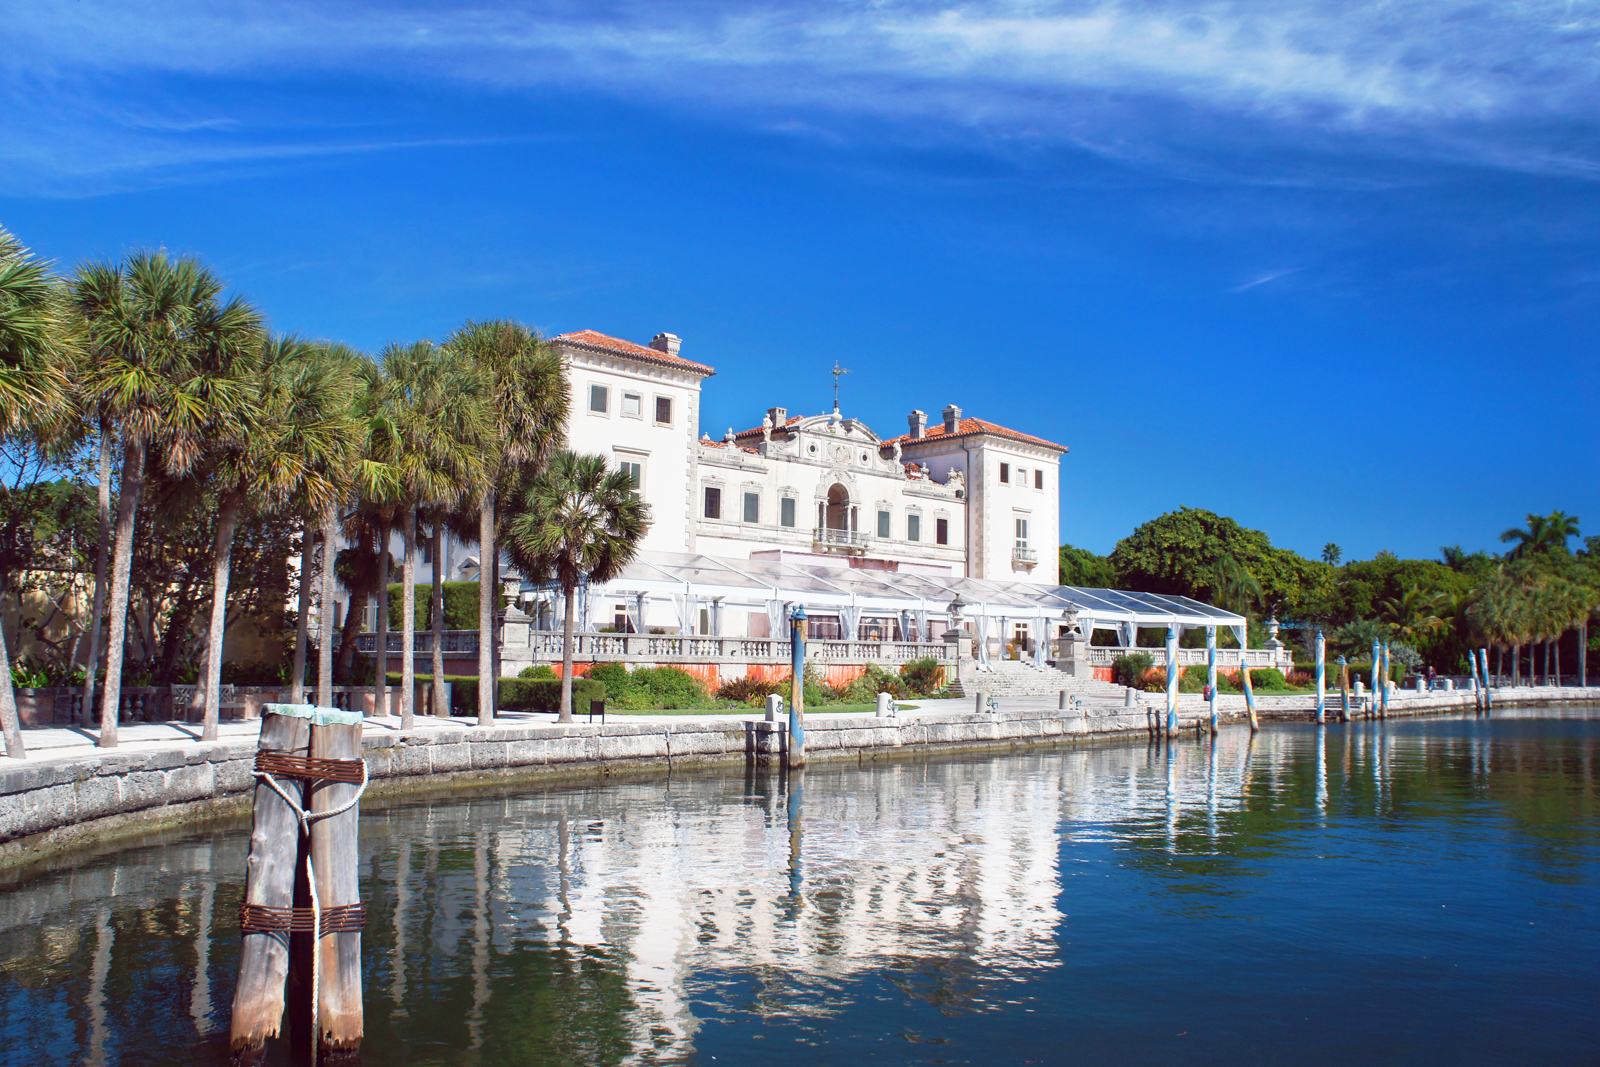 The Villa Vizcaya -- a top tourist attractions in Miami Florida. Museum and Gardens at Biscayne Bay in the Miami. Your guide for all the top Miami attractions and best things to do in Miami. There are Plenty of tourist attractions in Miami Florida. This Guide presented by Flying and Travel.